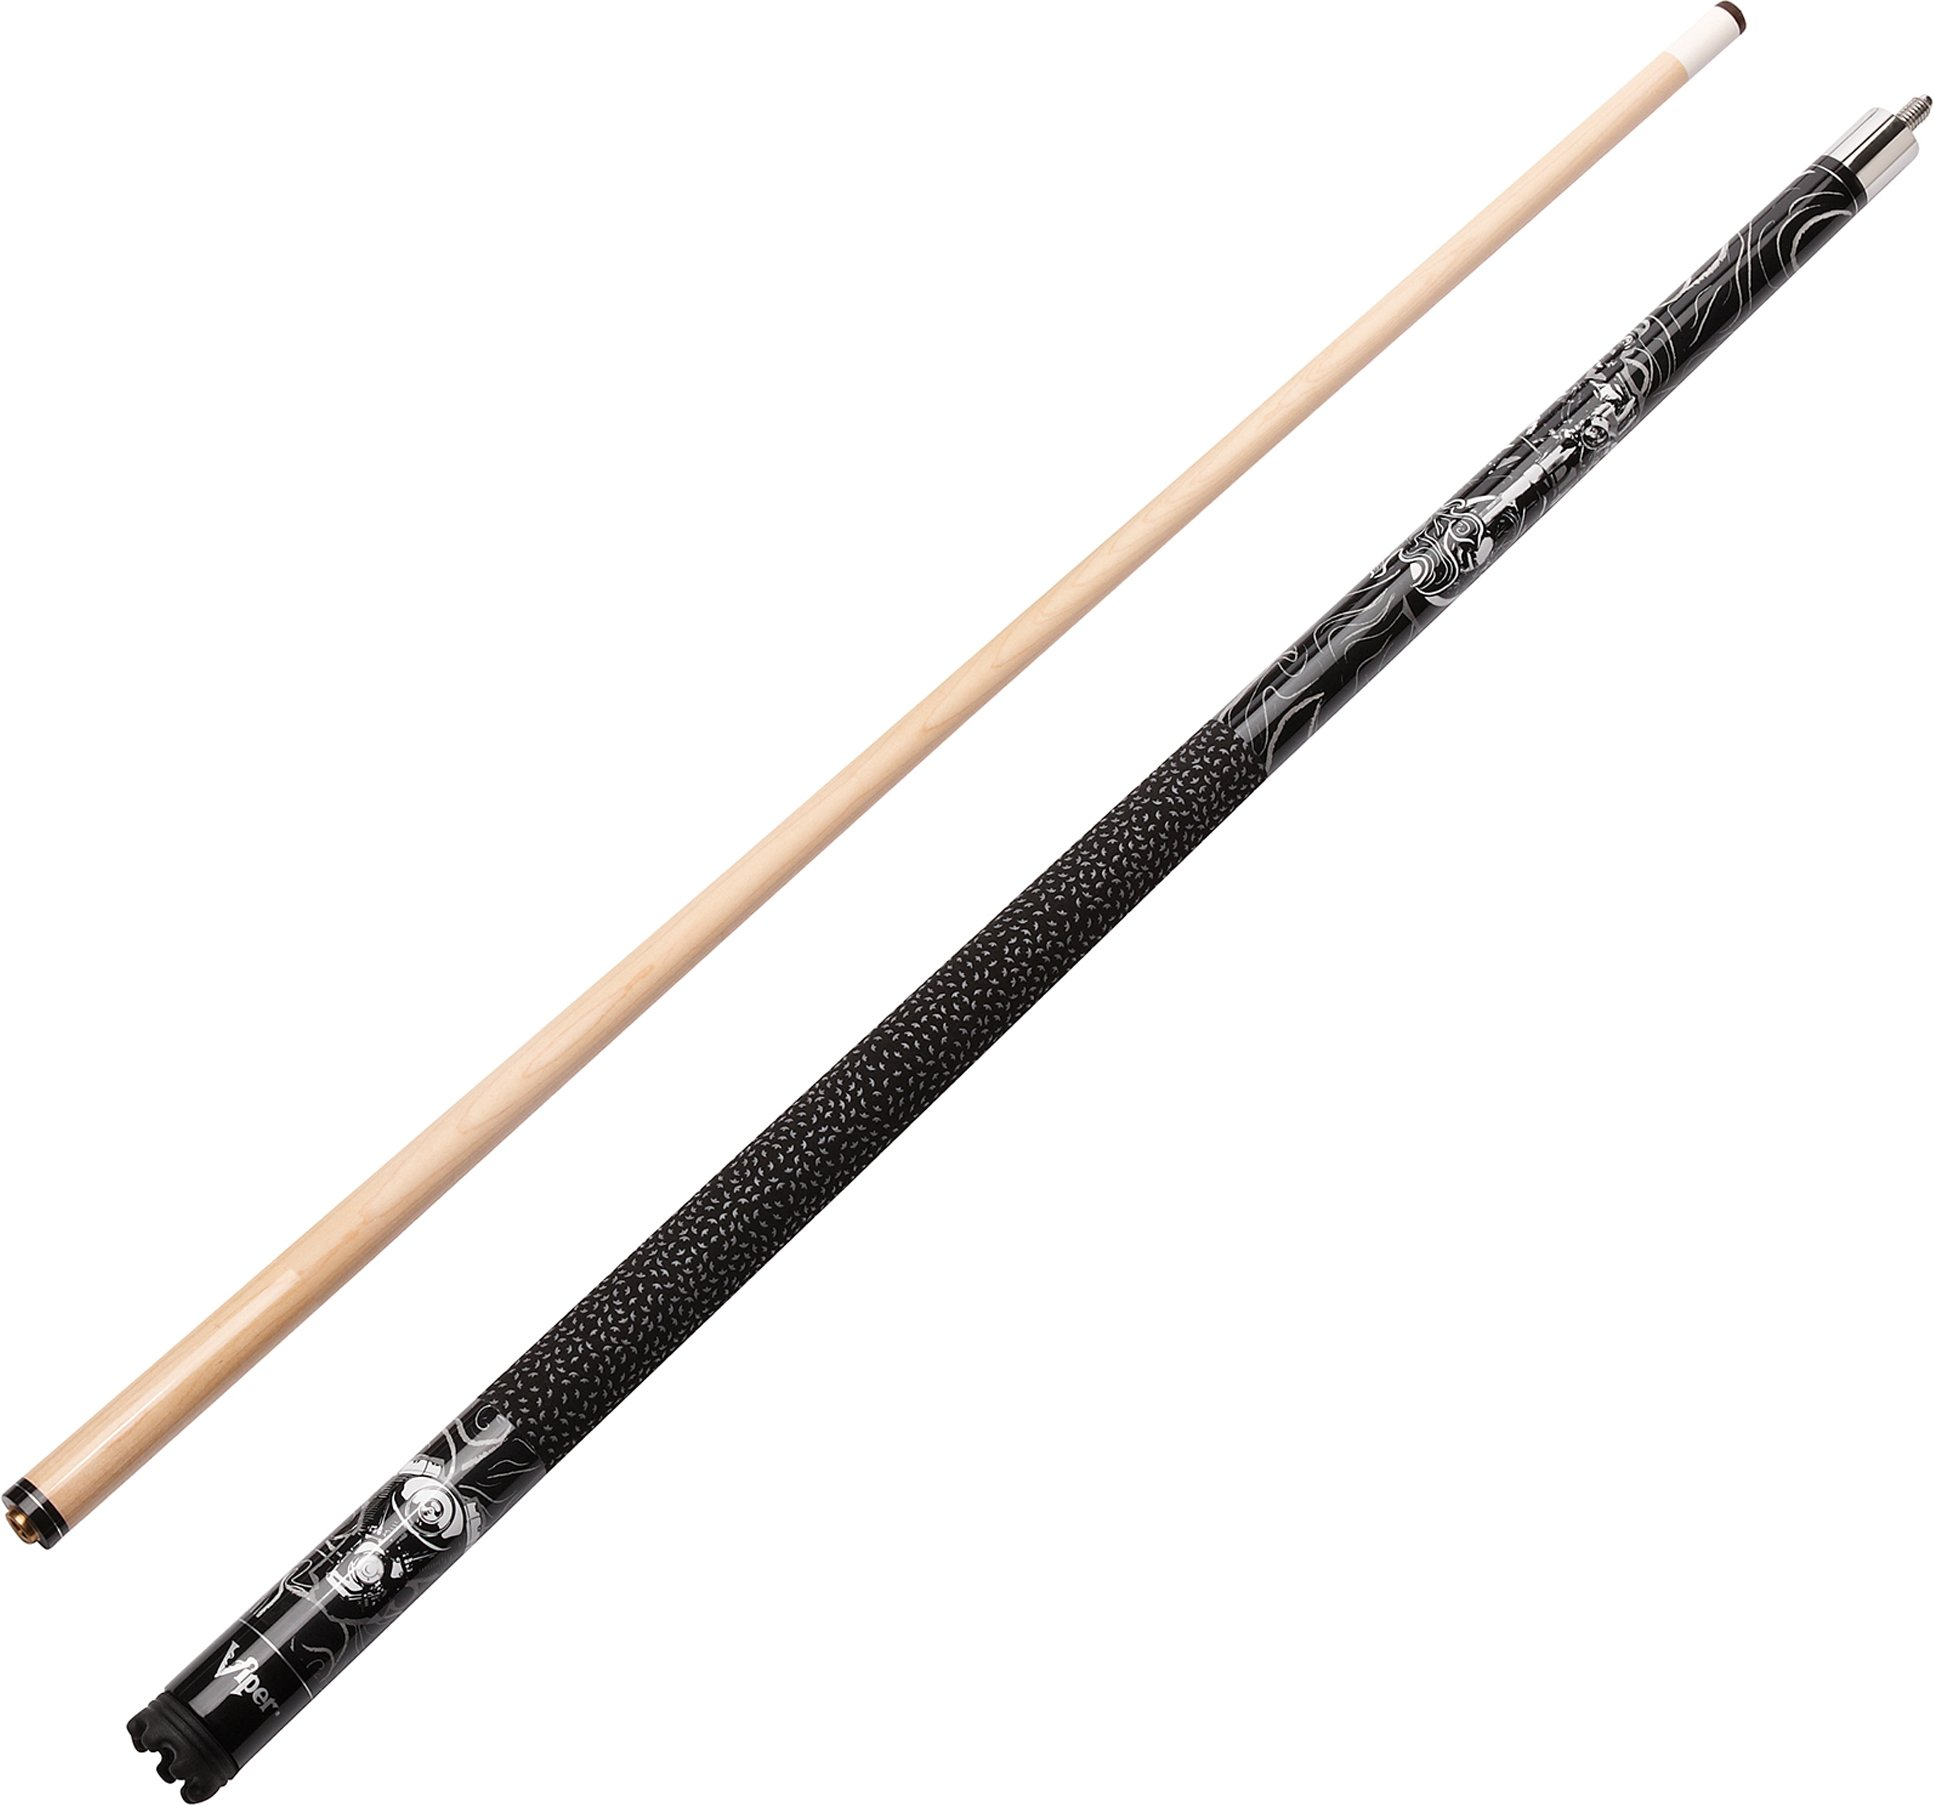 Viper Revolution 58'' 2-Piece Billiard/Pool Cue, Rider, 21 Ounce